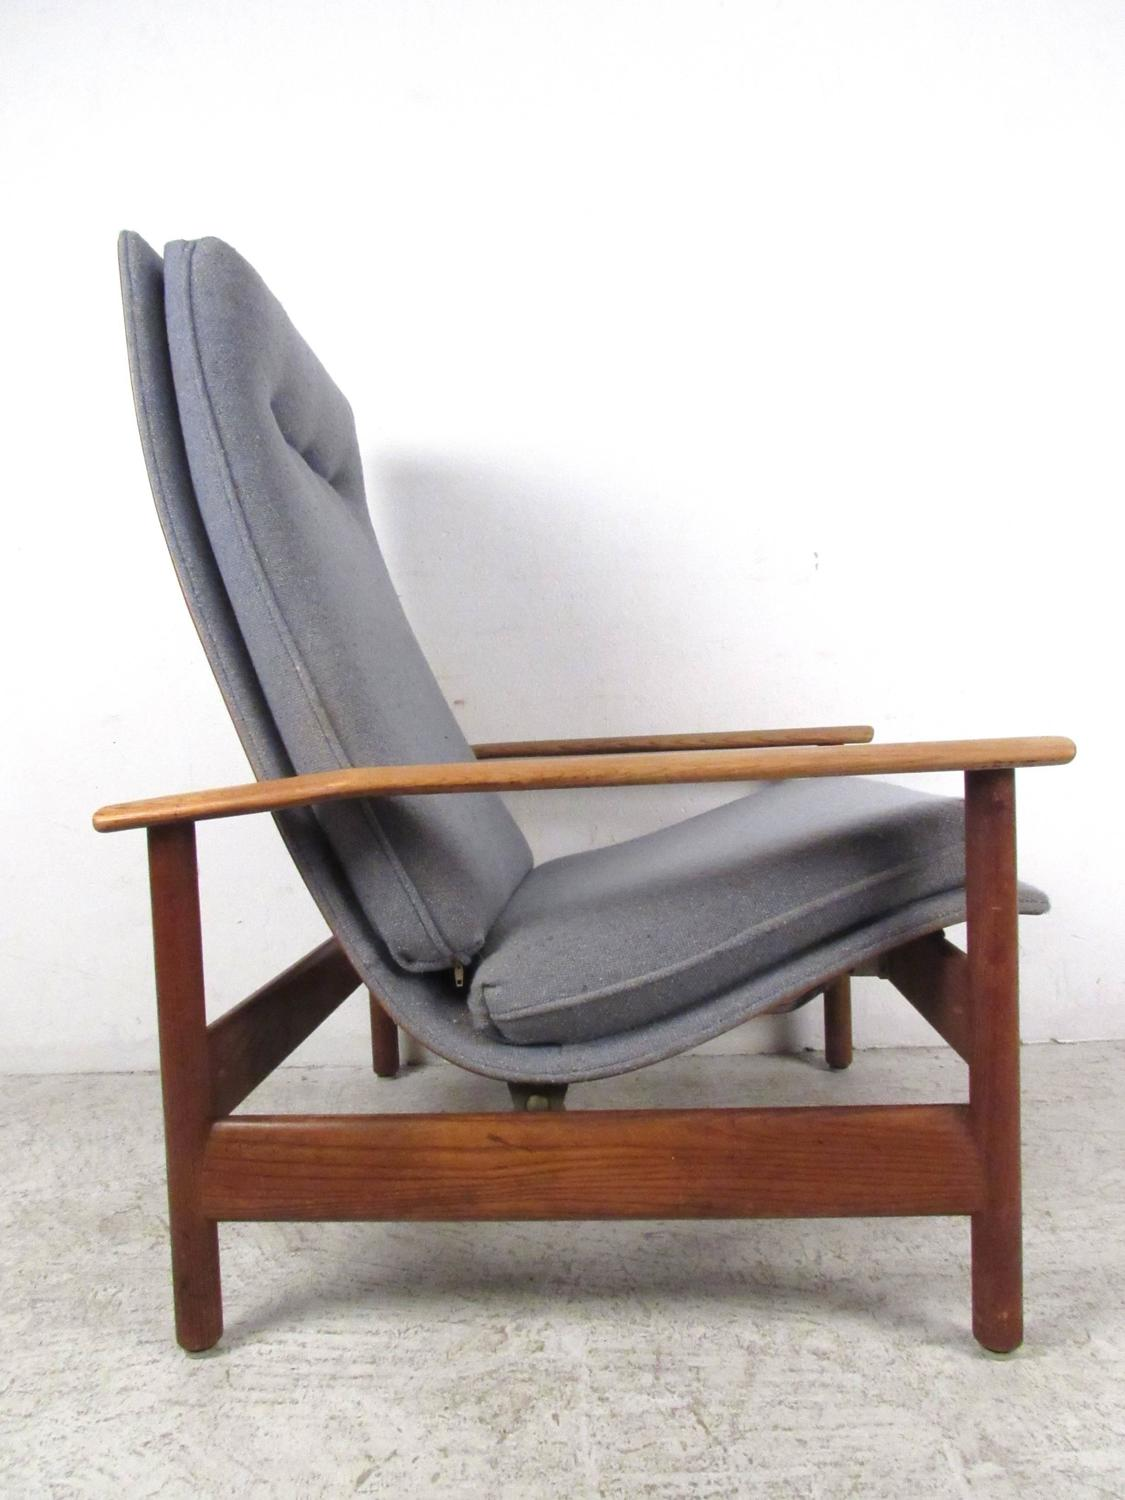 Unique Mid Century Danish Style Lounge Chair With Ottoman At 1stdibs